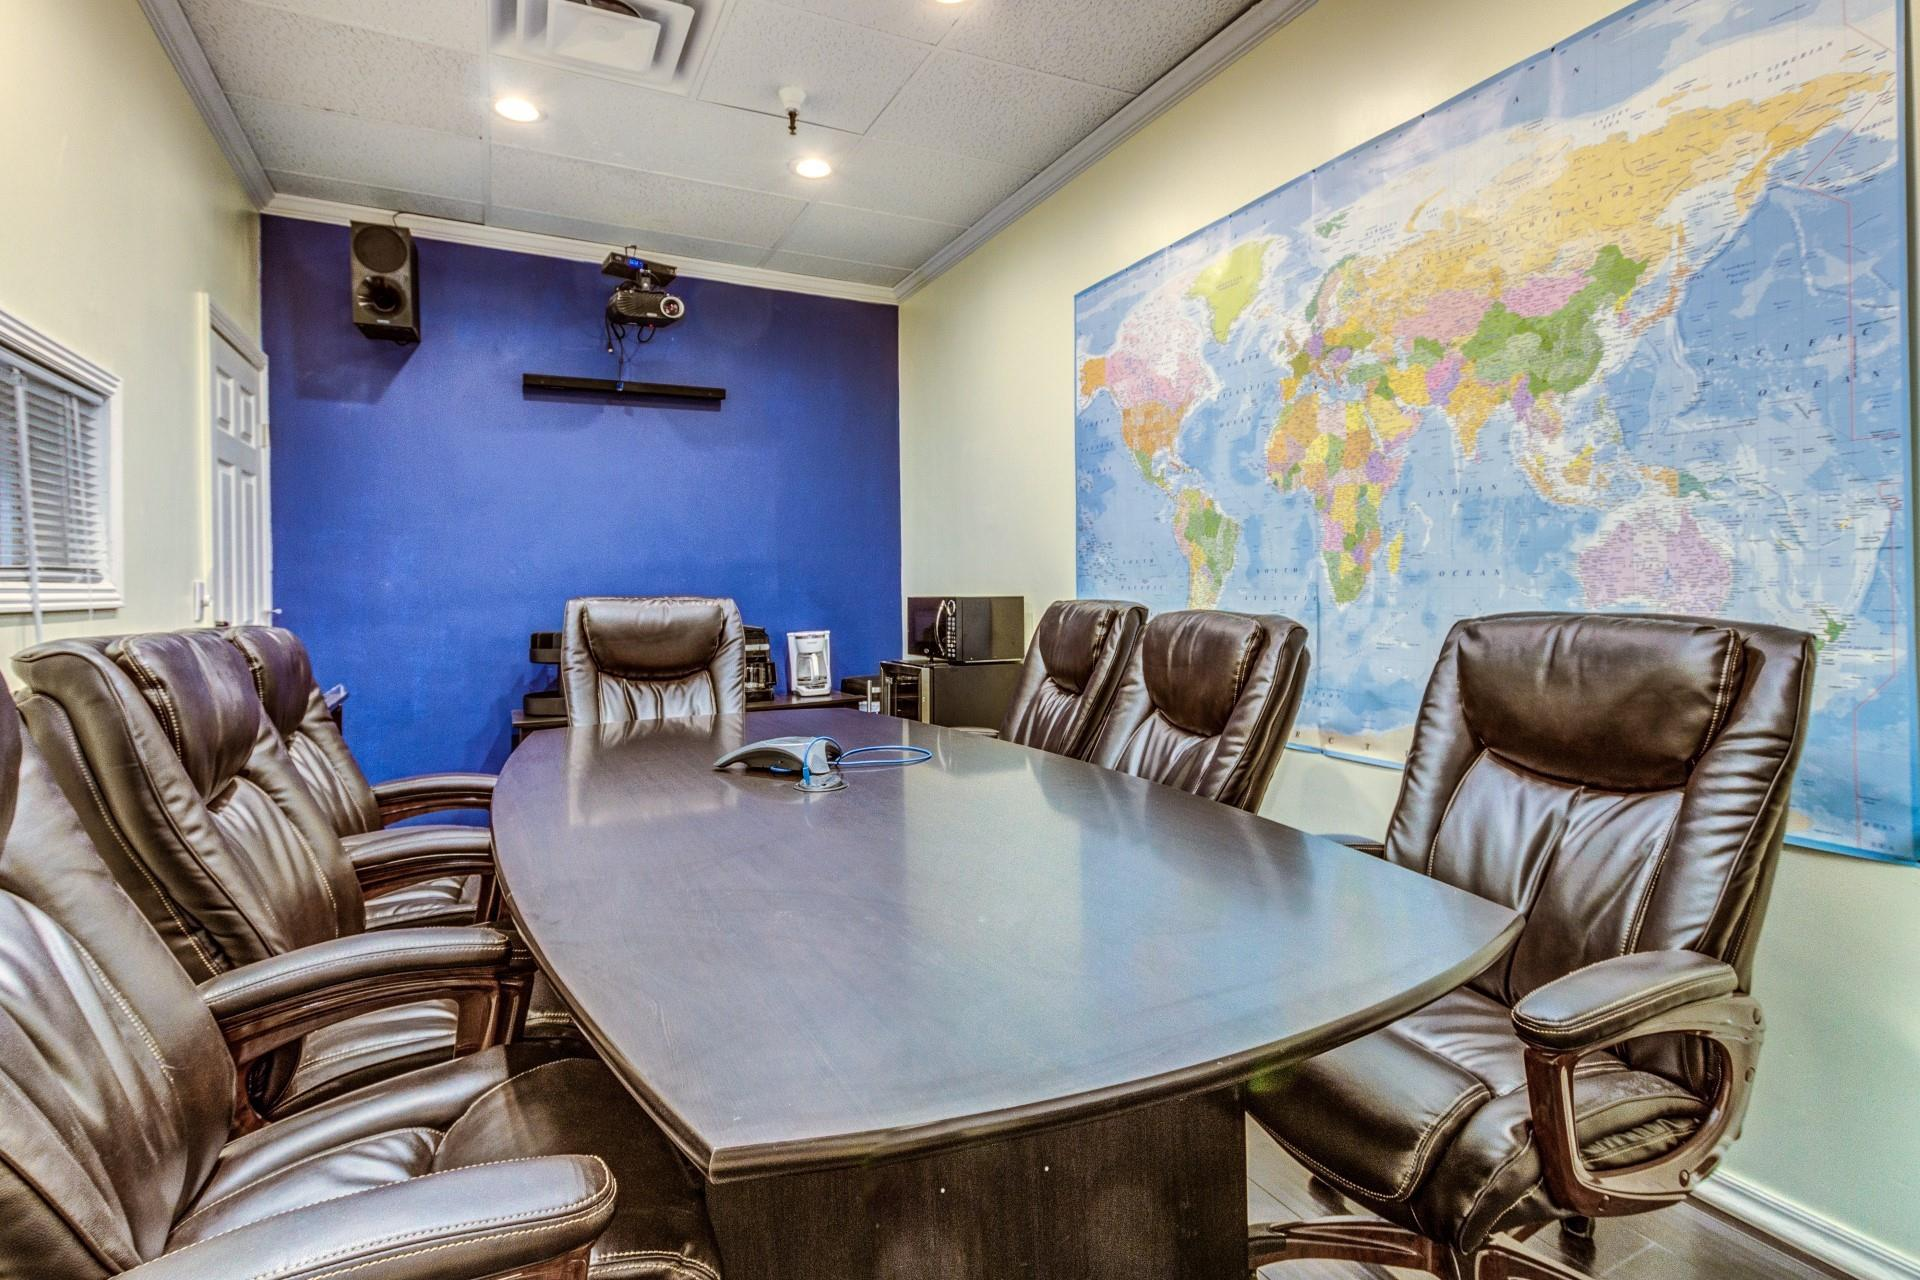 Just My Office - Meeting/Conference Room 1